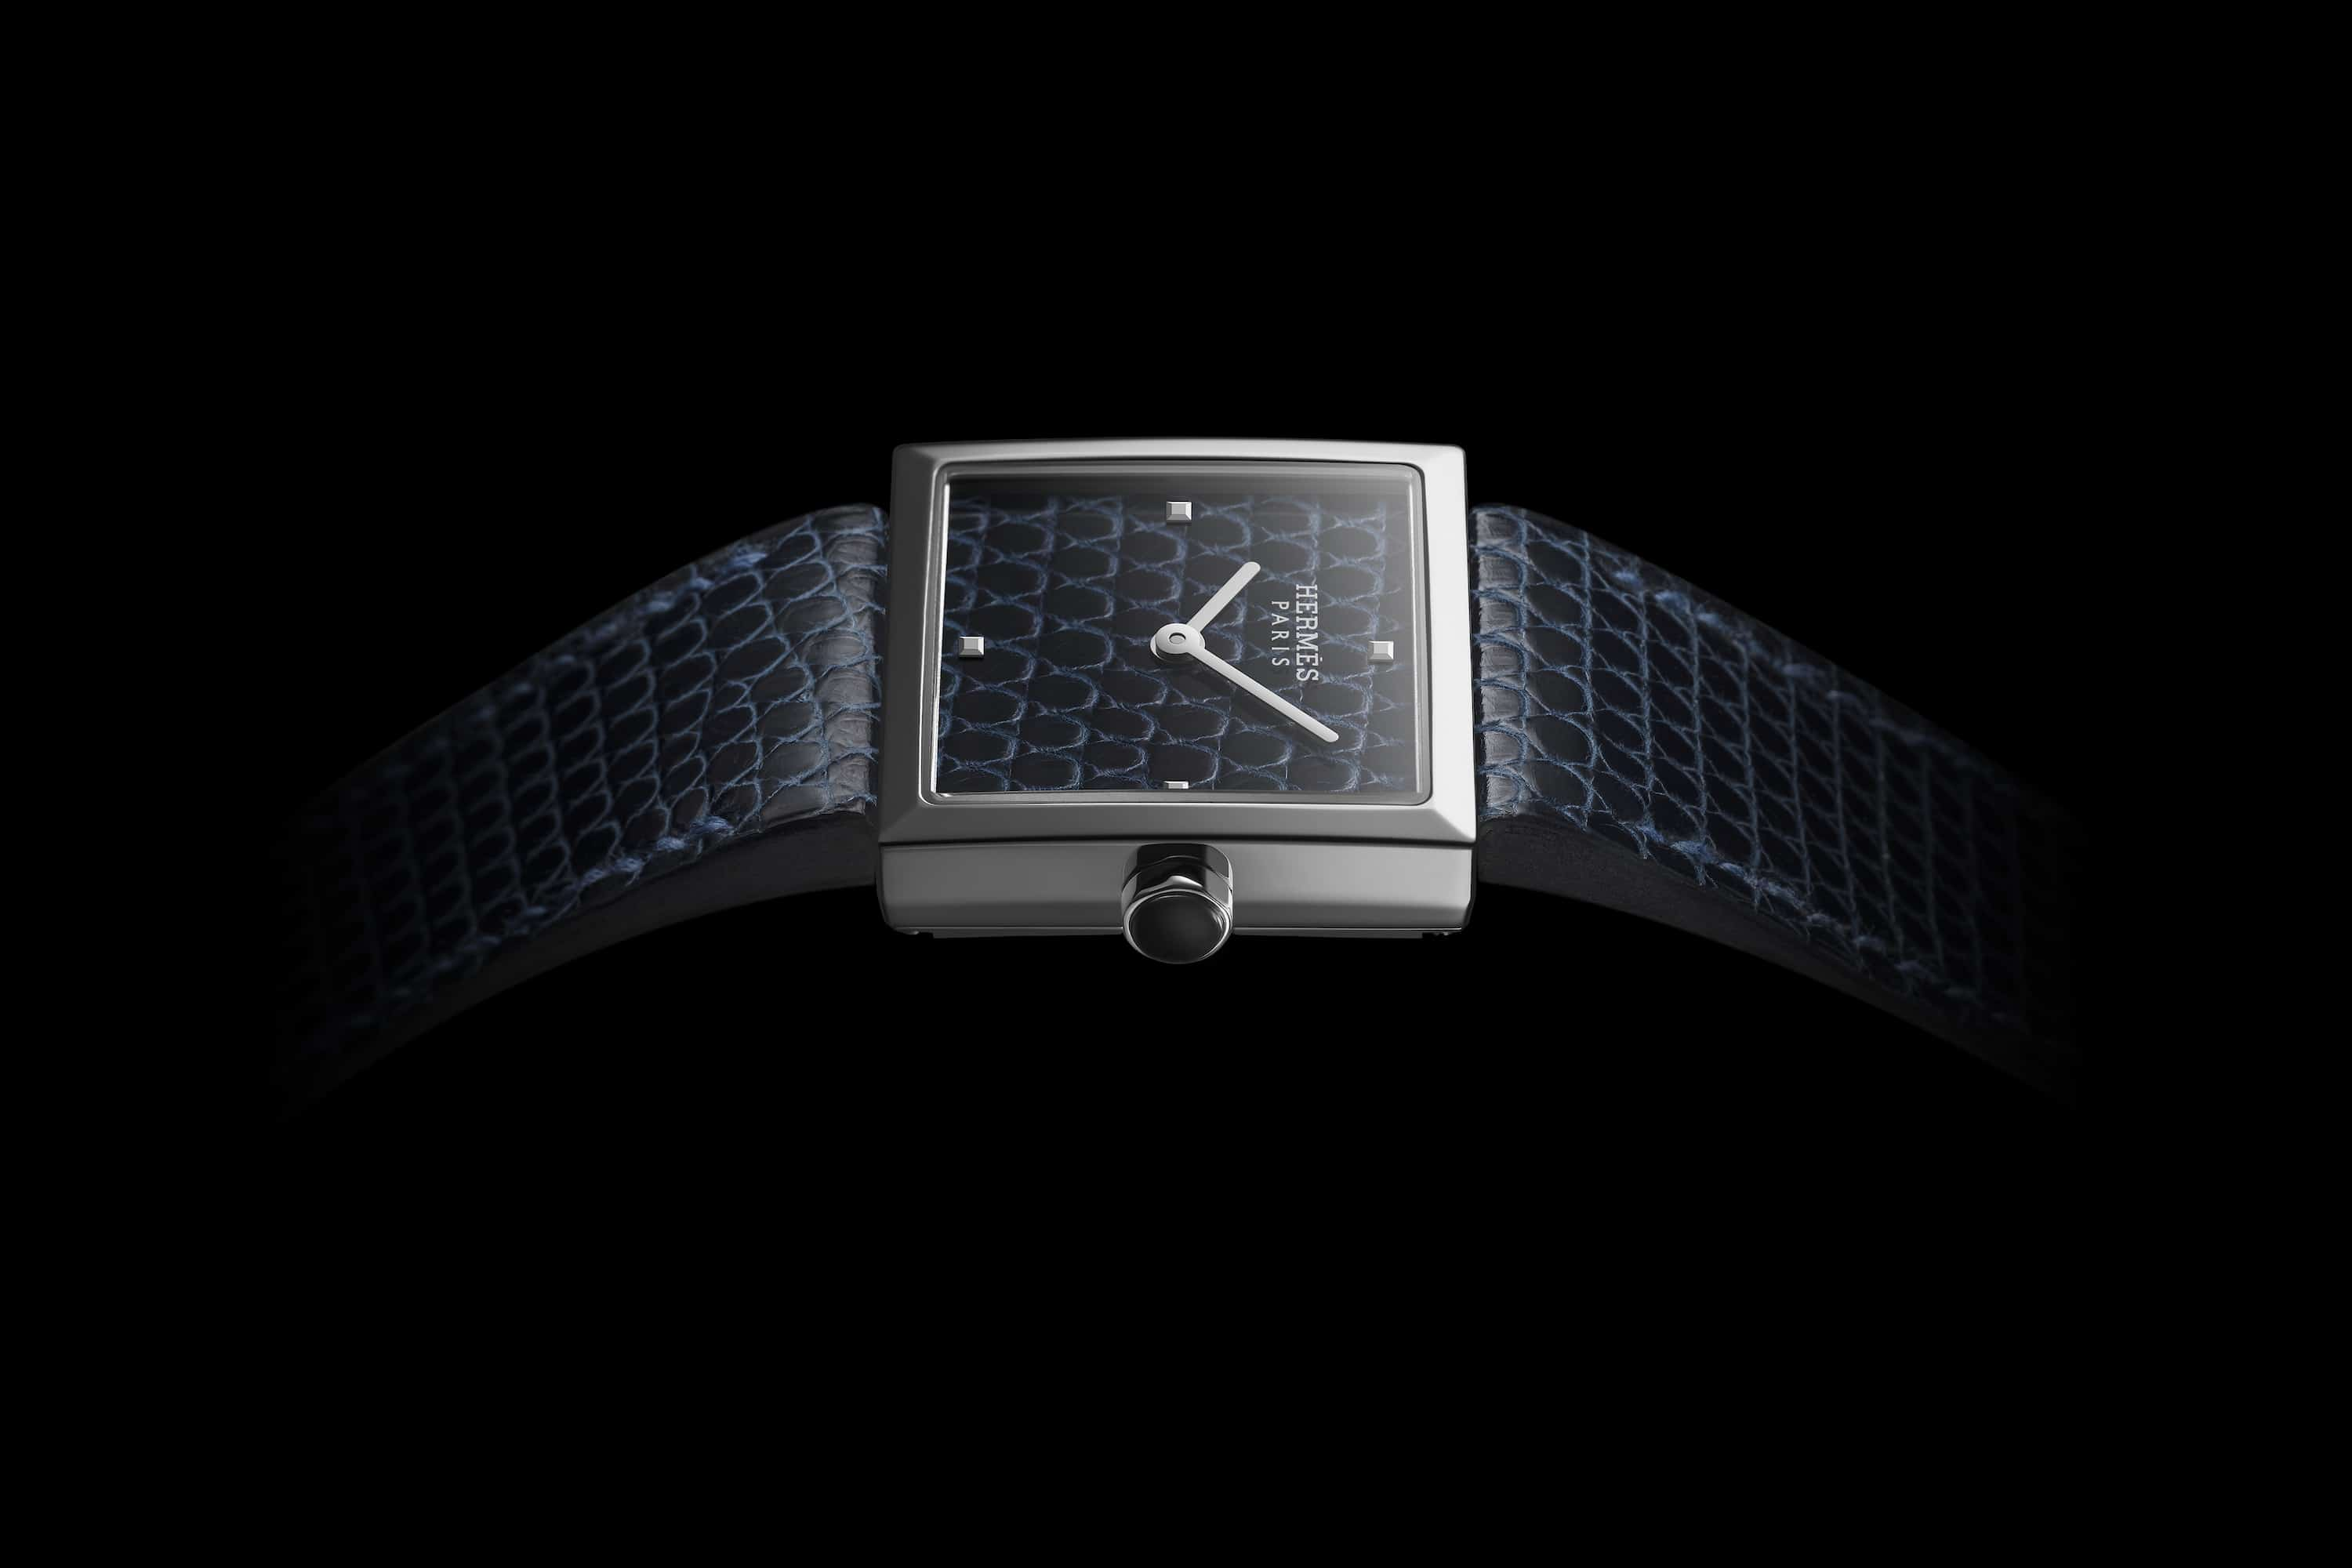 The new Hermès Carré Cuir tells time using a clever optical illusion